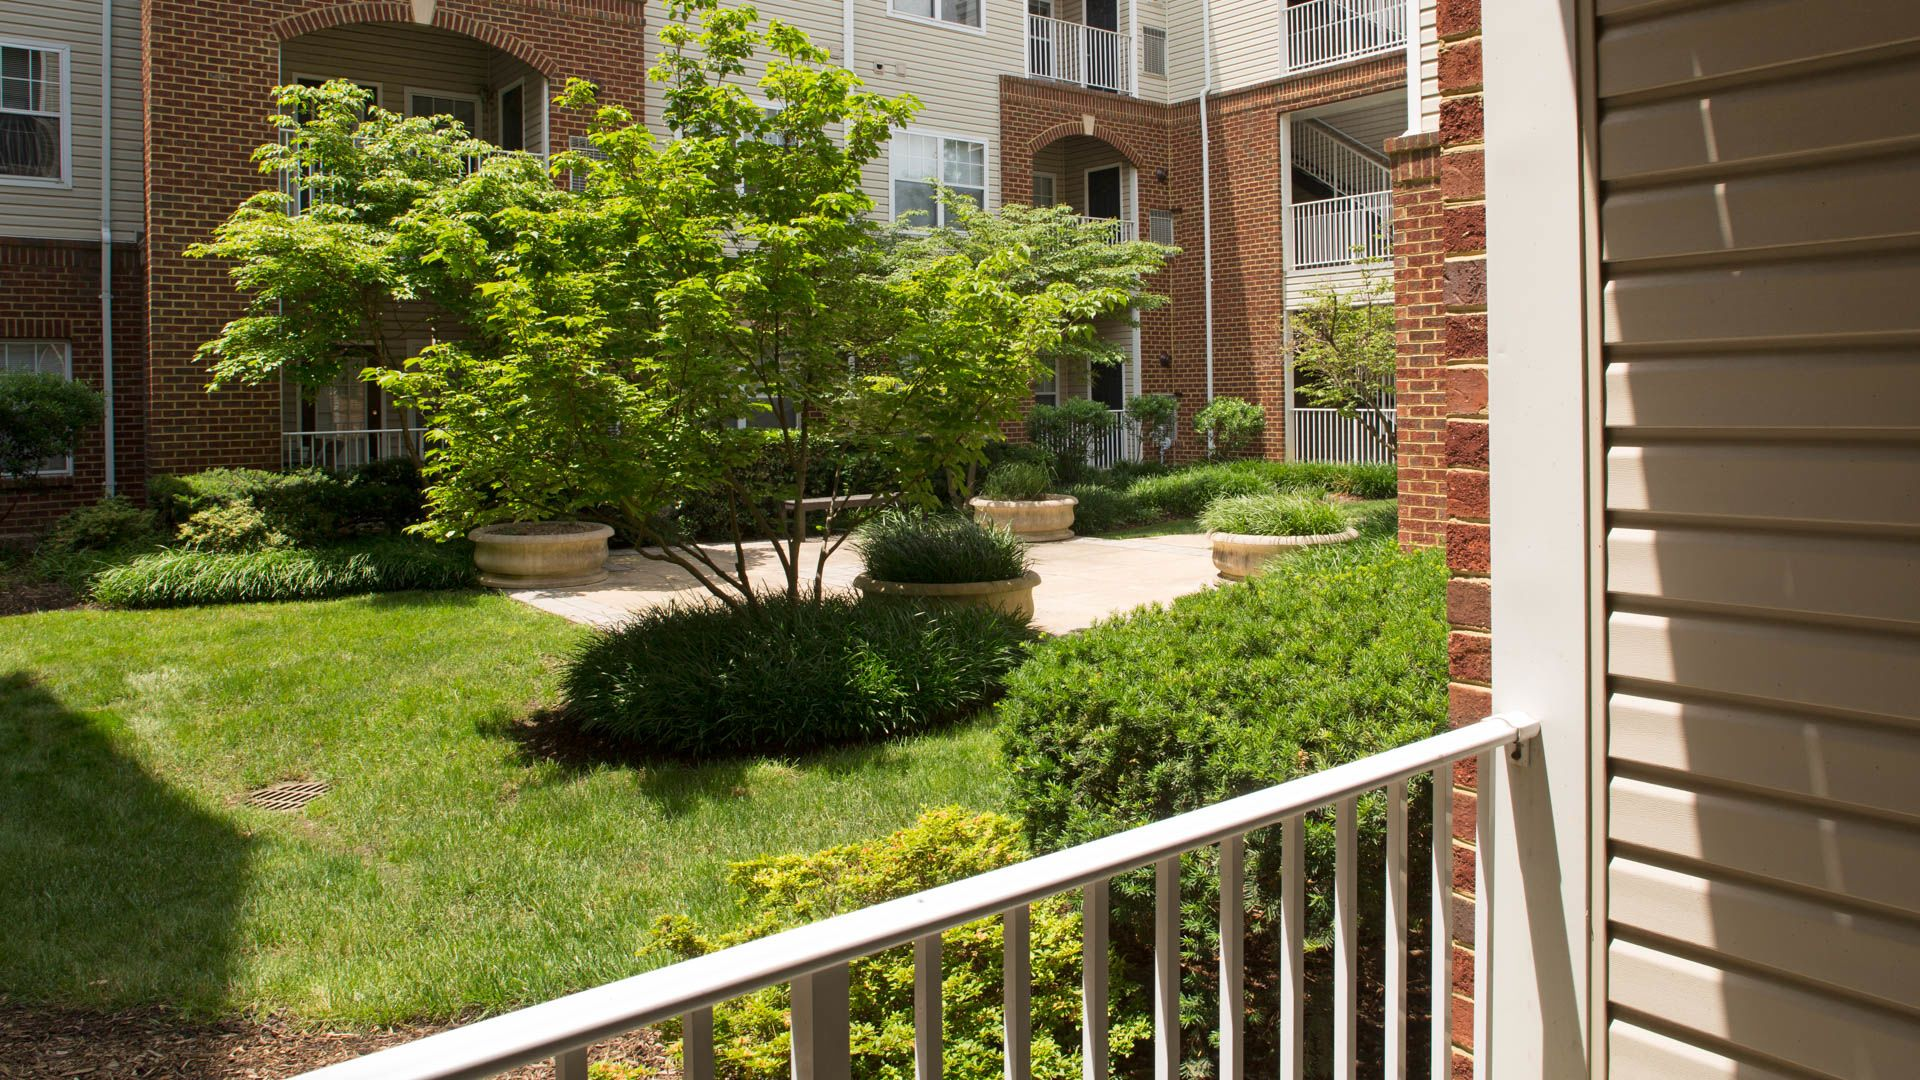 Superb Reserve At Potomac Yard Apartments In Alexandria   3700 Jefferson Davis Hwy    EquityApartments.com Images